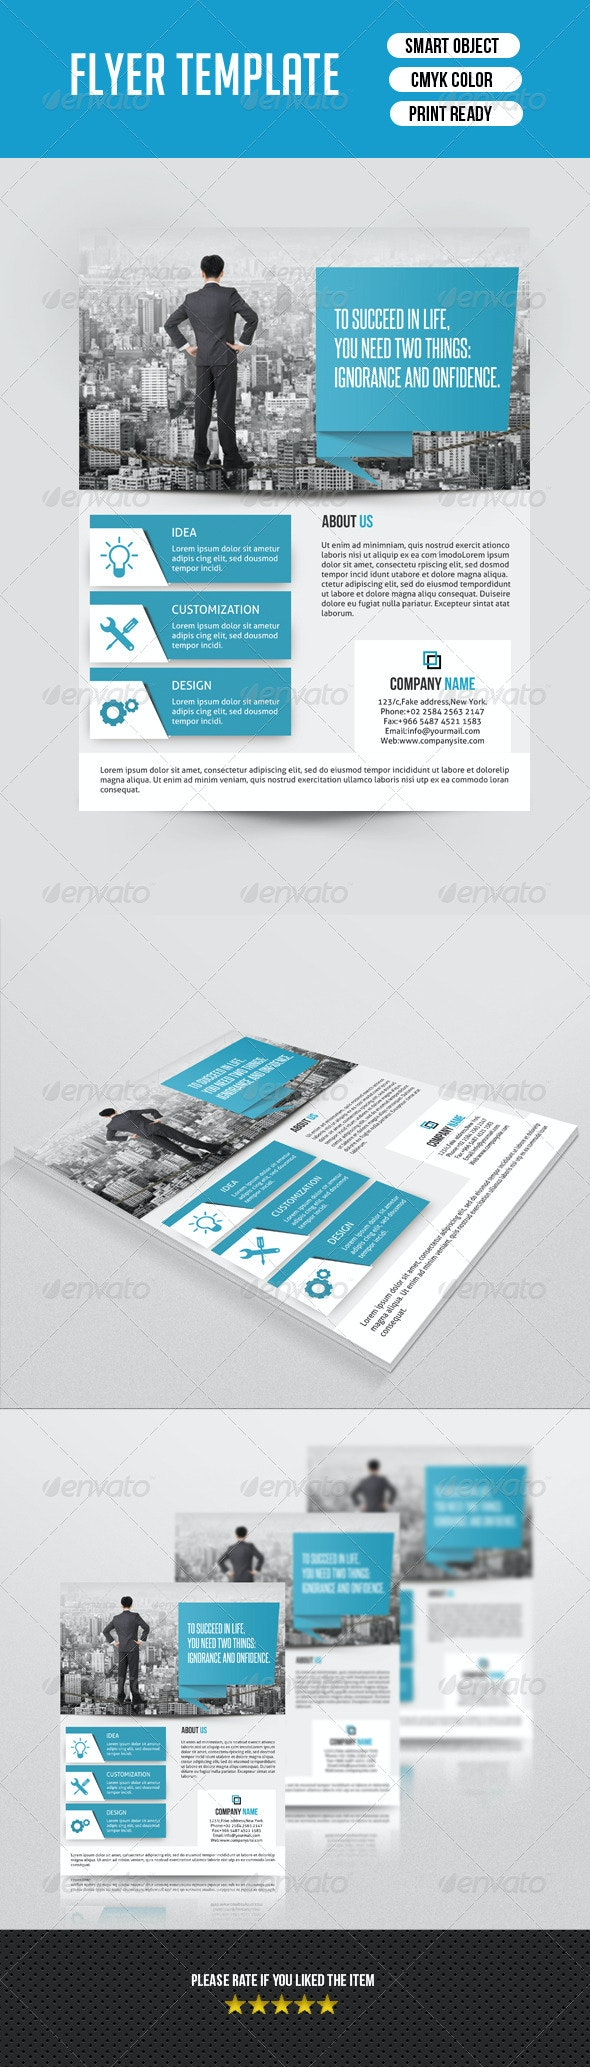 Corporate Flyer Template-V123 - Corporate Flyers